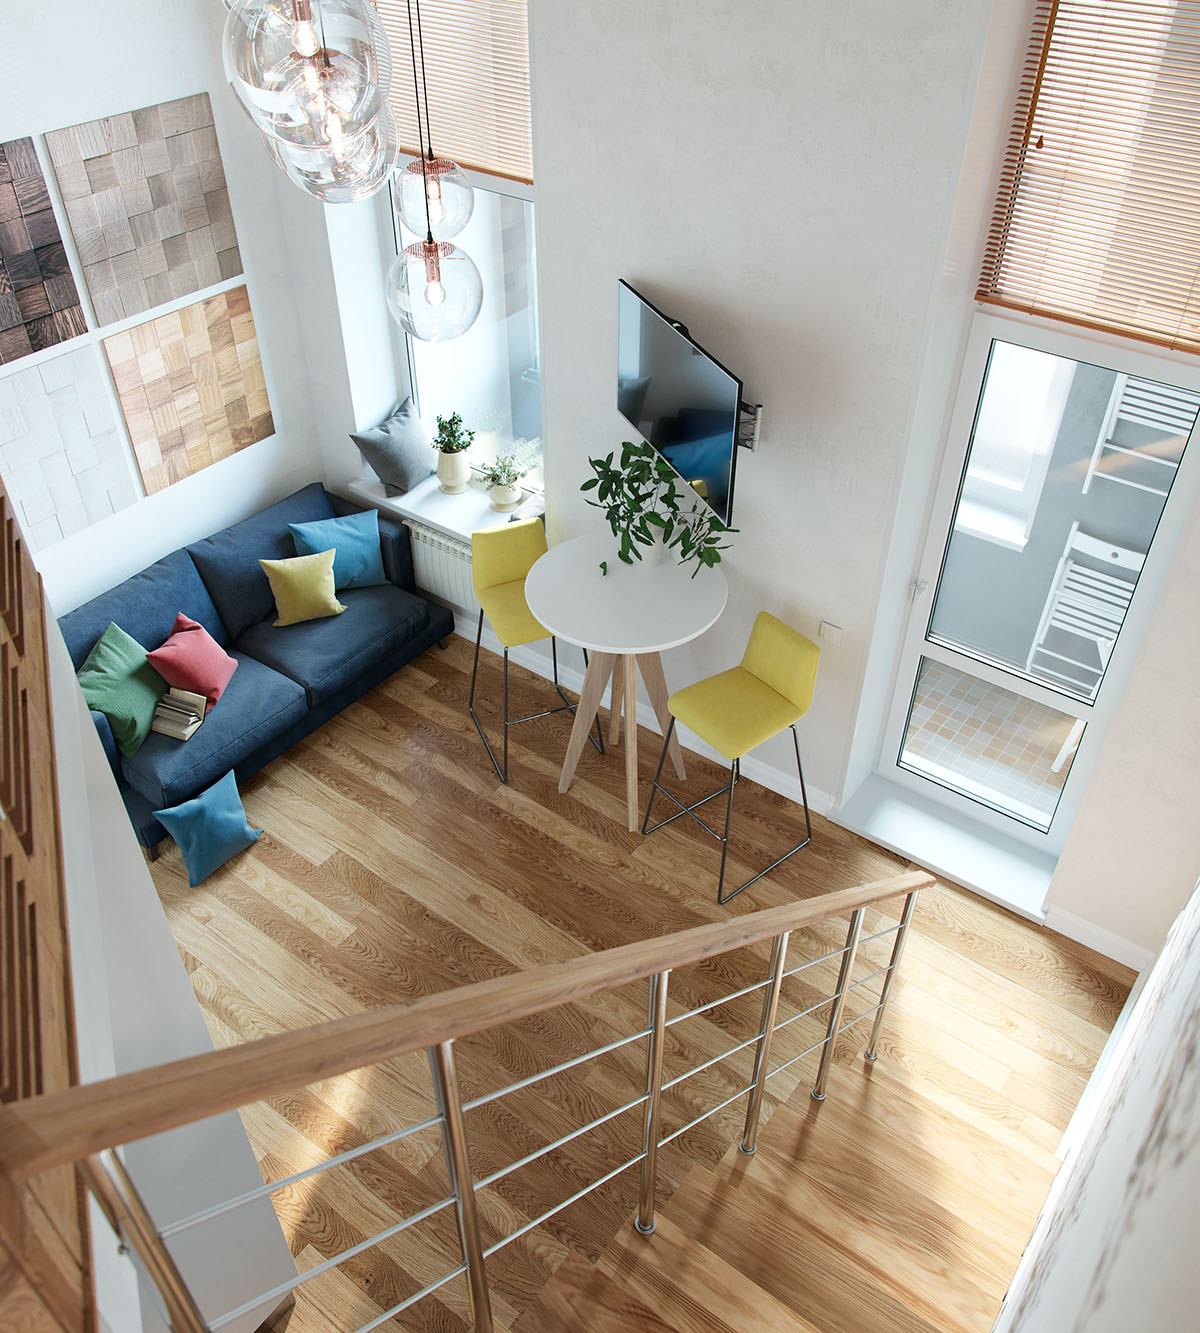 Small Studio Apartment In Moscow With Loft Bedroom | iDesignArch ...